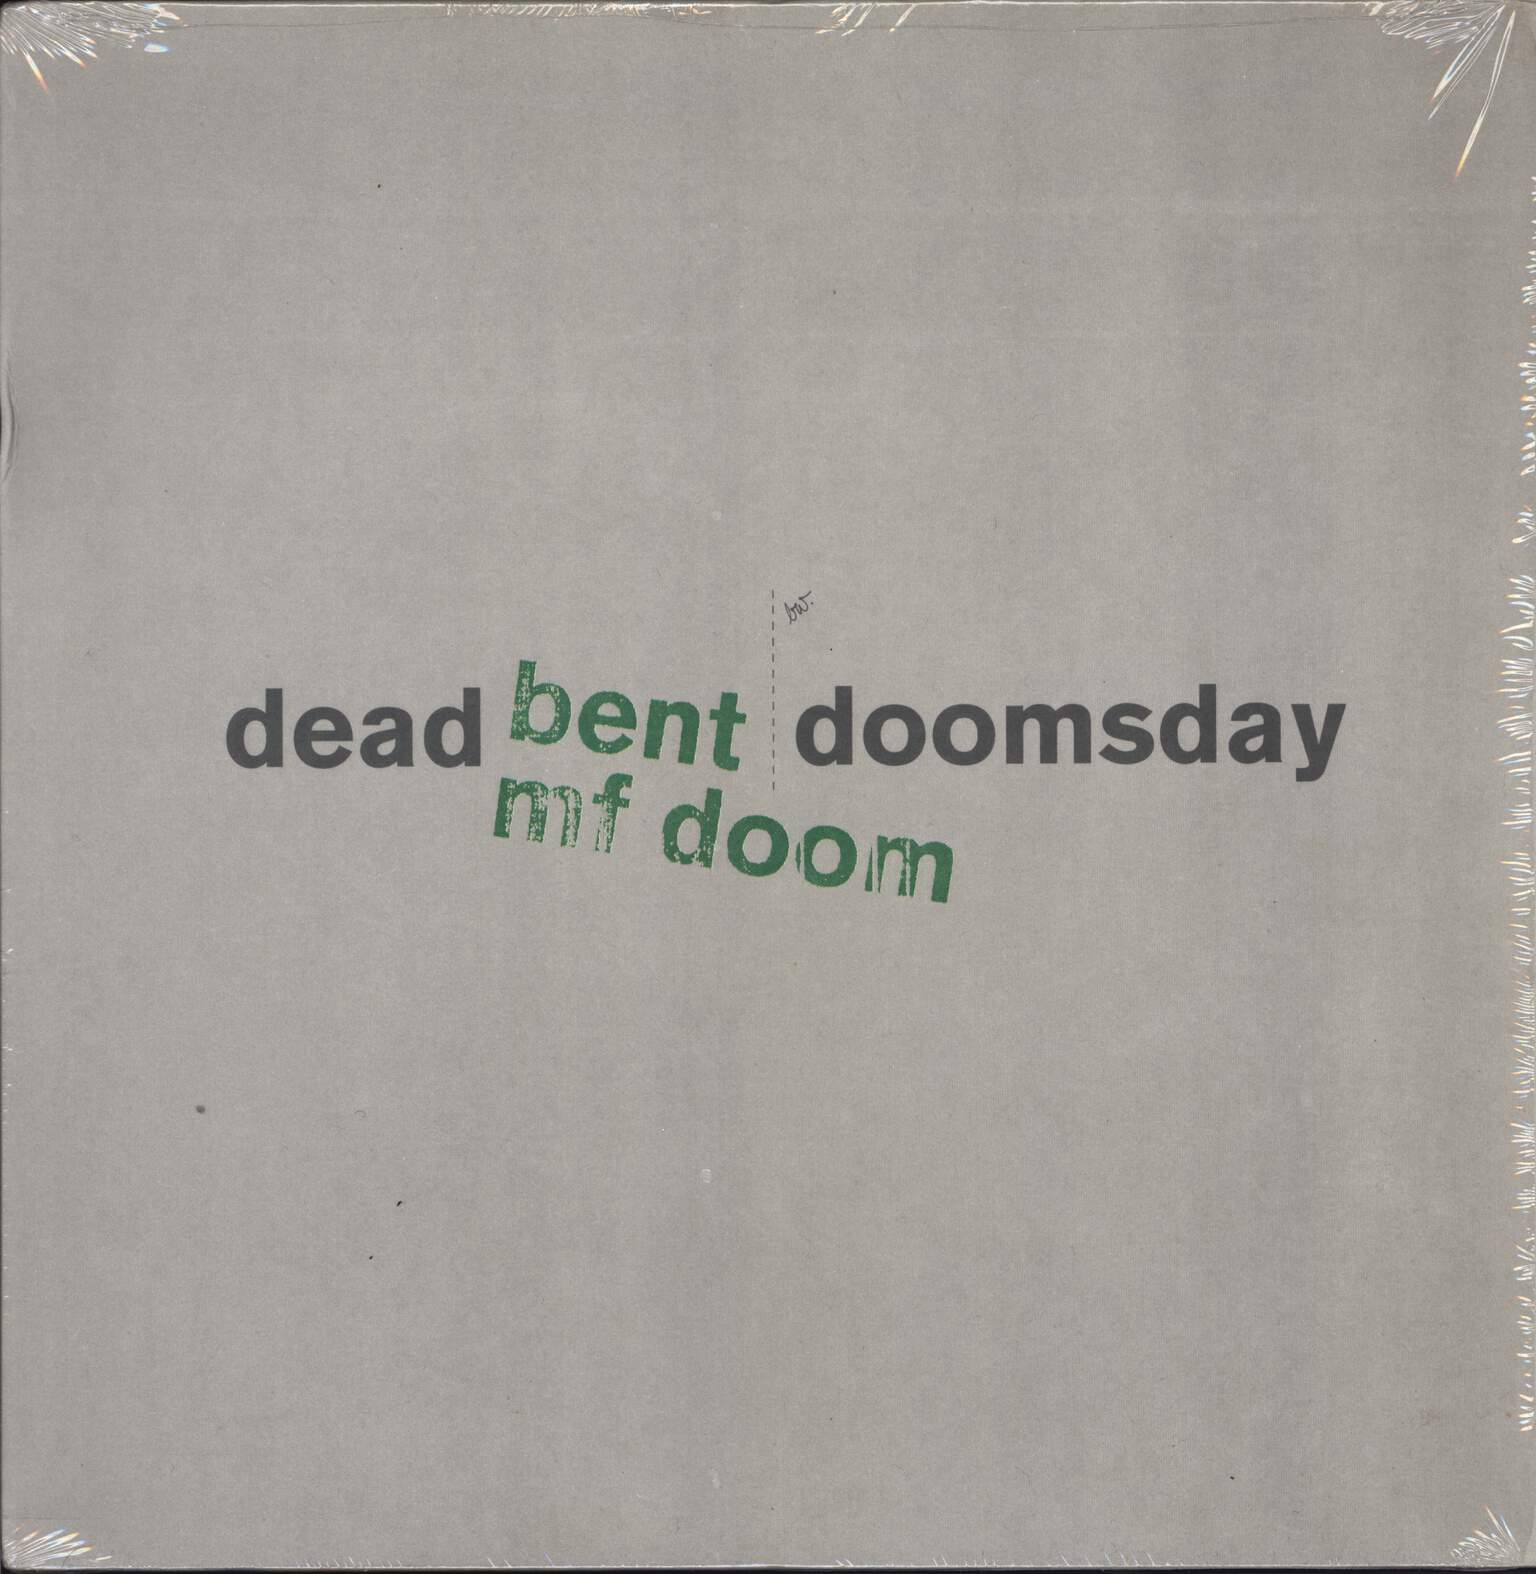 "Mf Doom: Dead Bent / Doomsday, 12"" Maxi Single (Vinyl)"